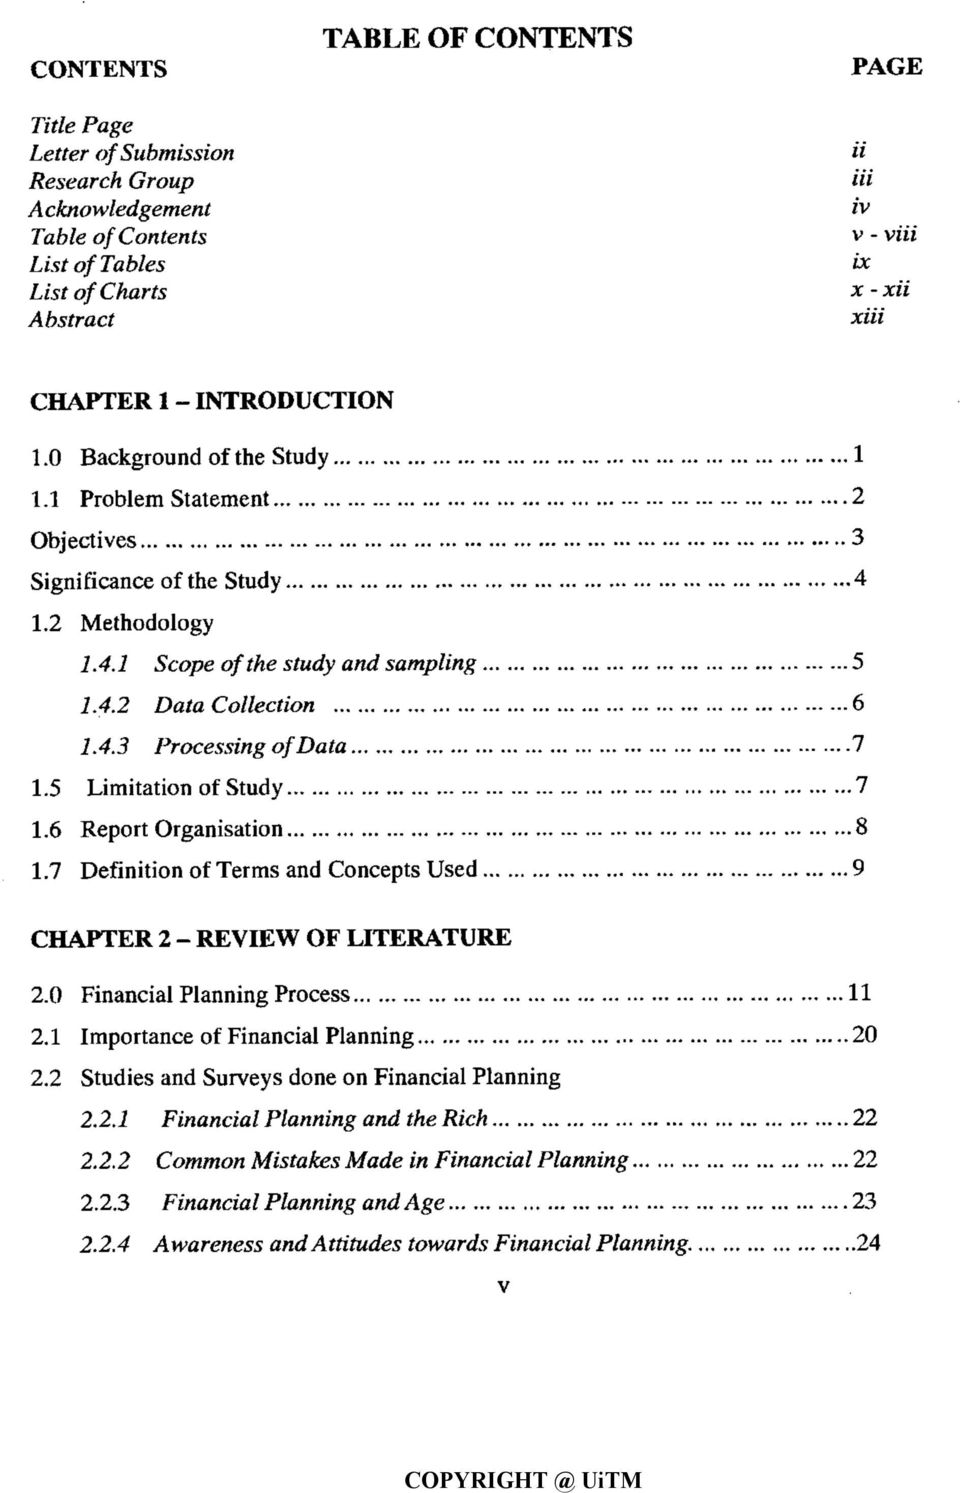 a study of personal financial planning practised by accountants in